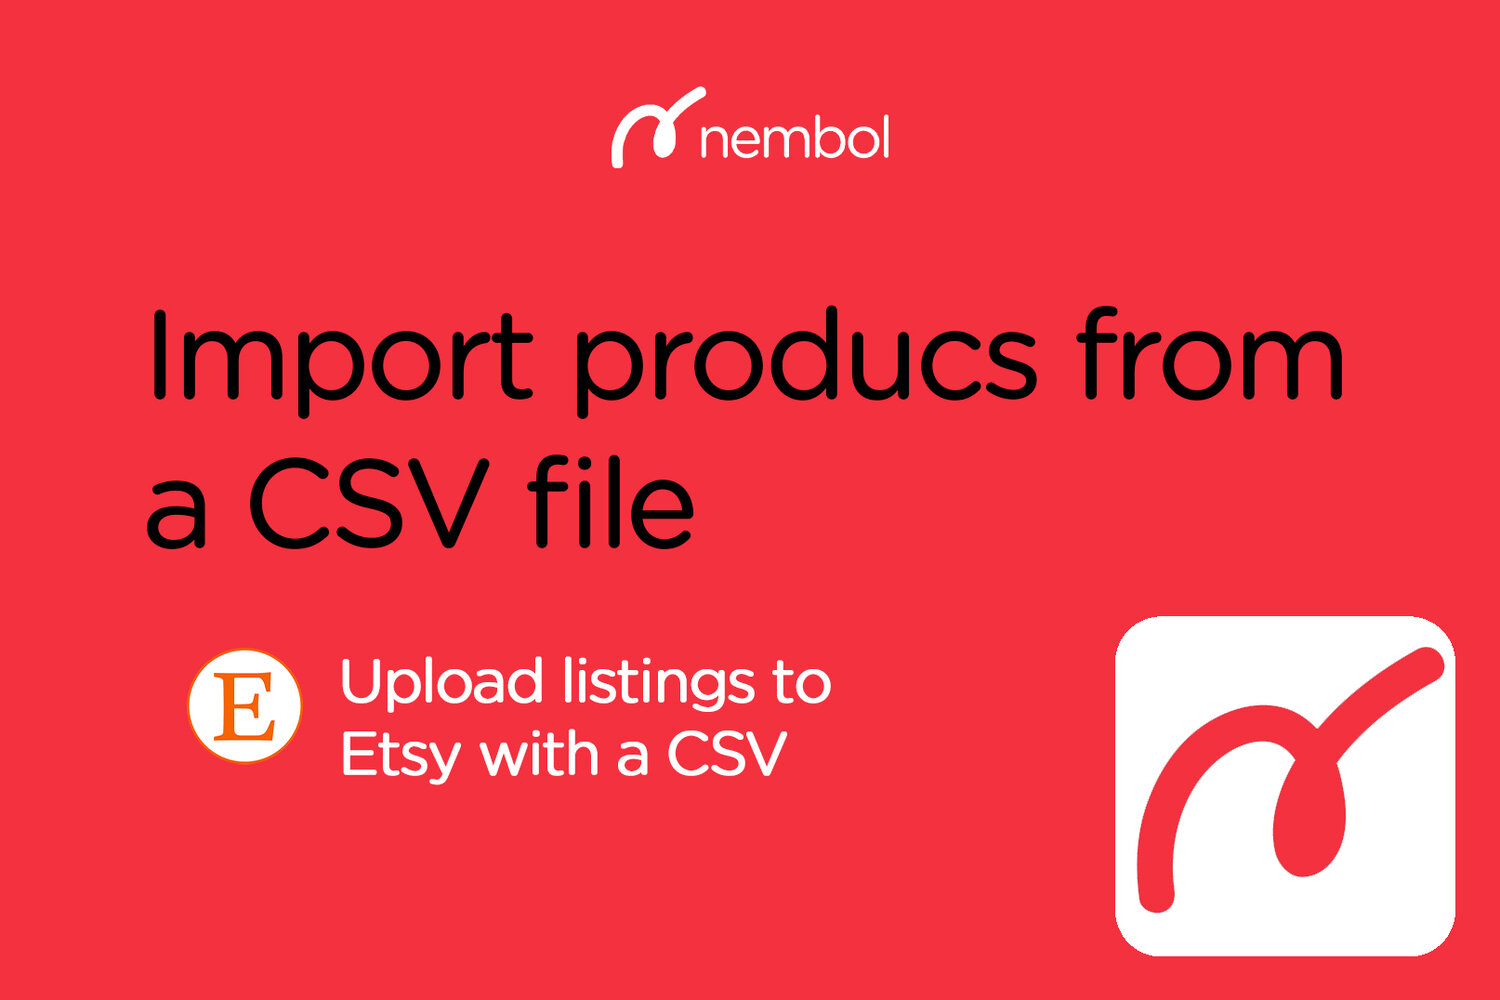 Use a CSV file to publish products on eBay, Shopify, Etsy